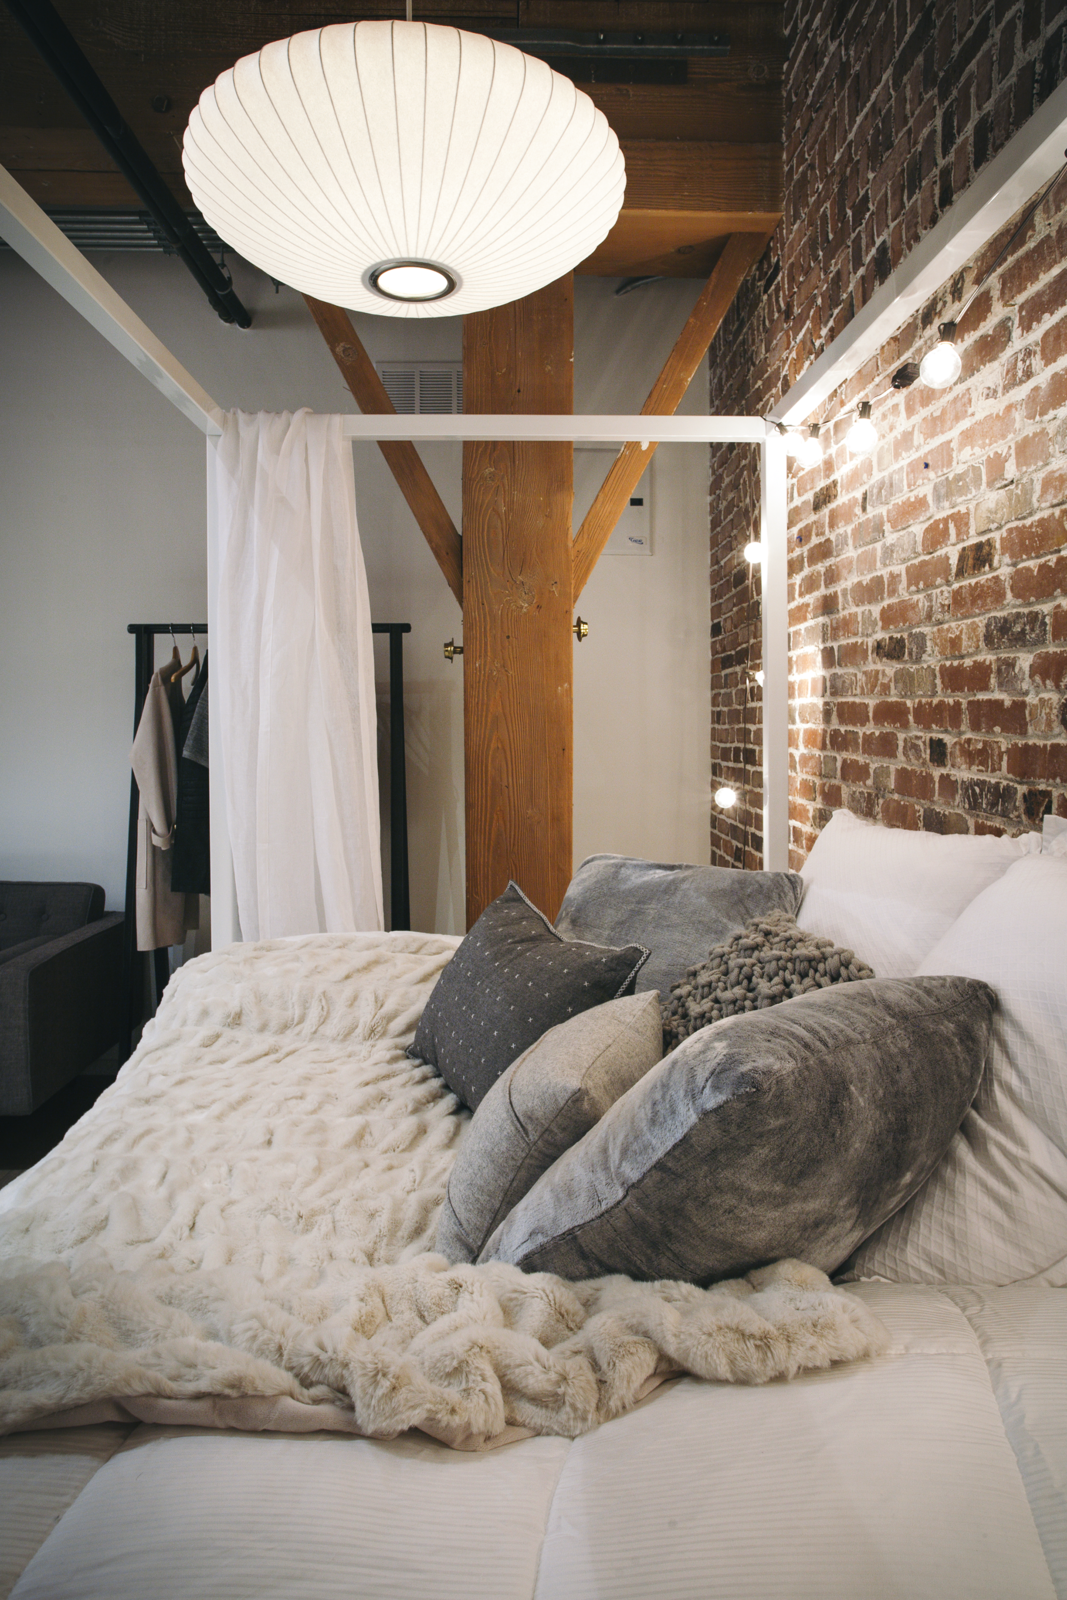 A George Nelson Saucer Lamp hangs over the bedroom.